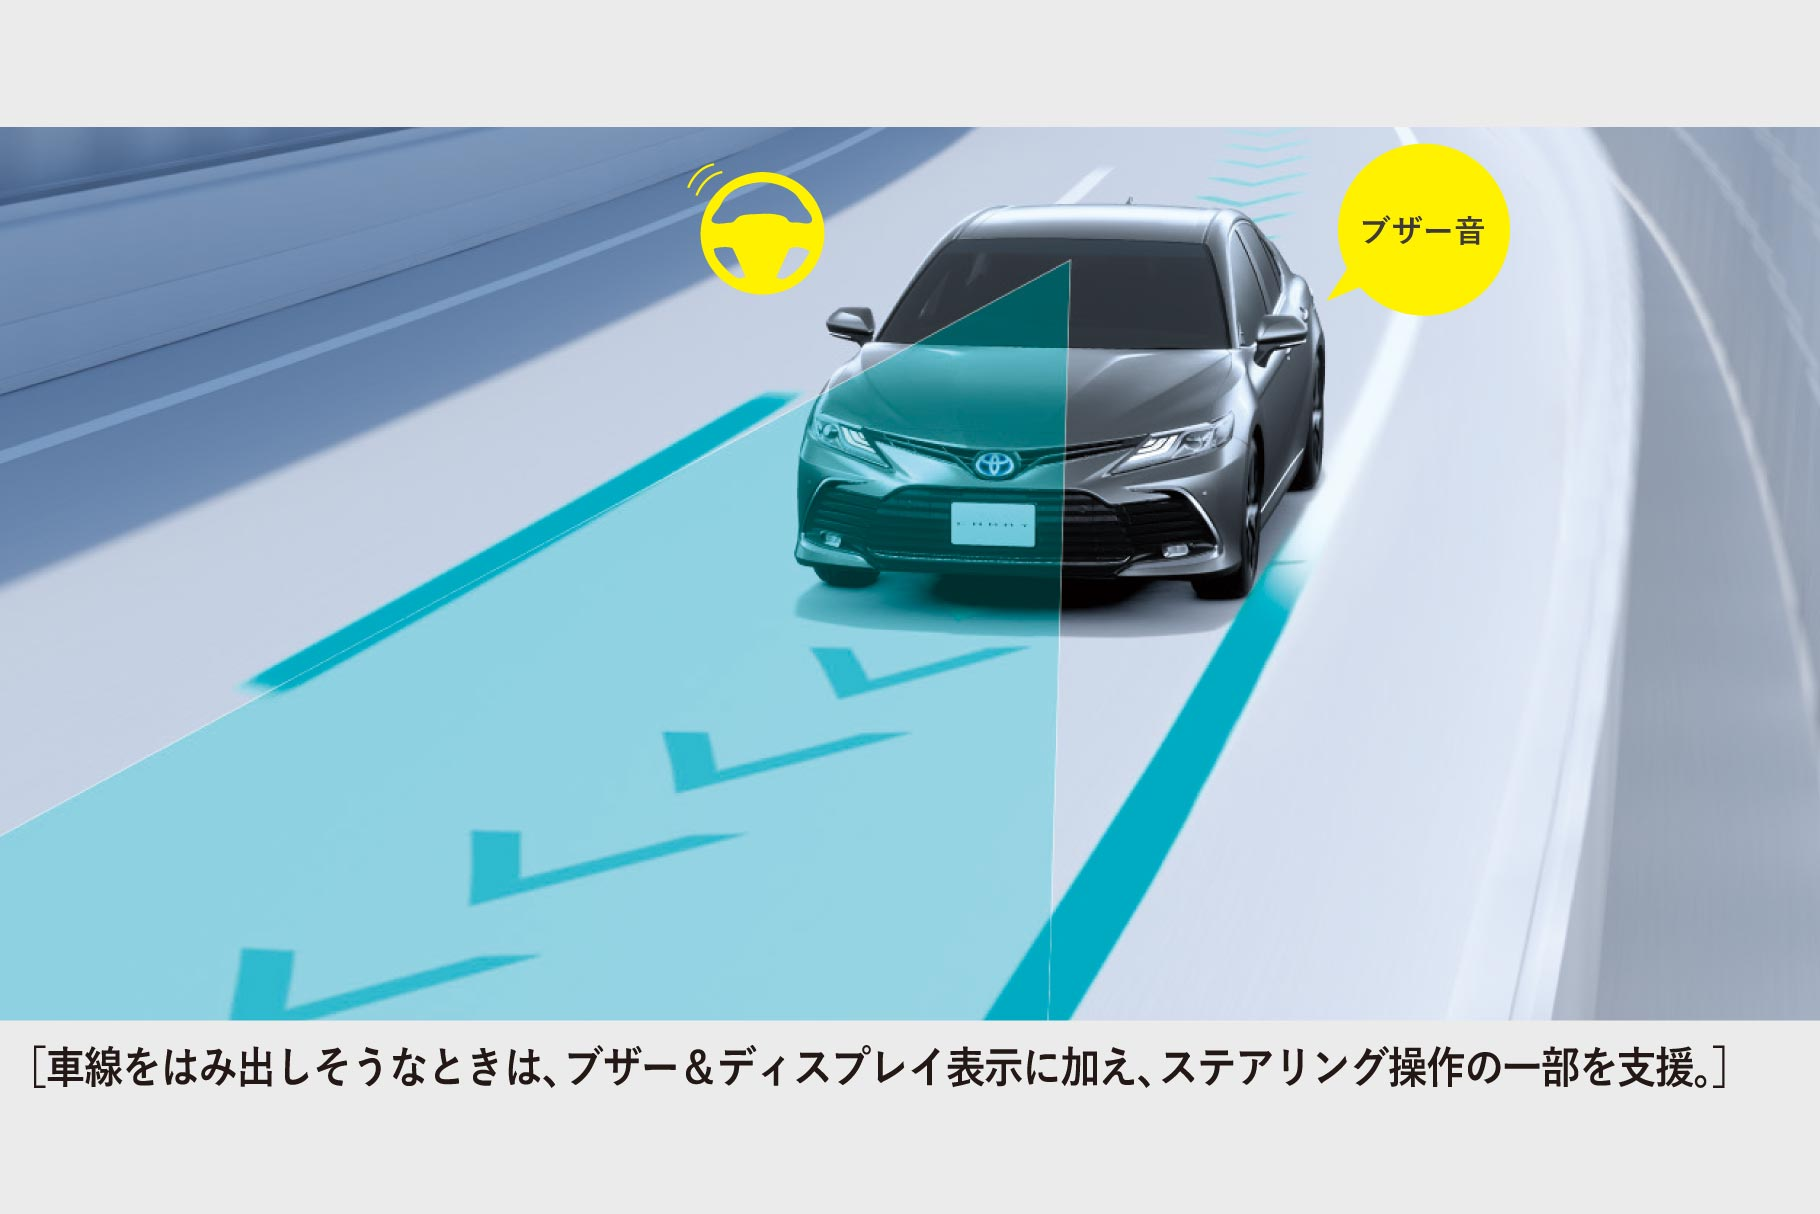 camry_safety_img11